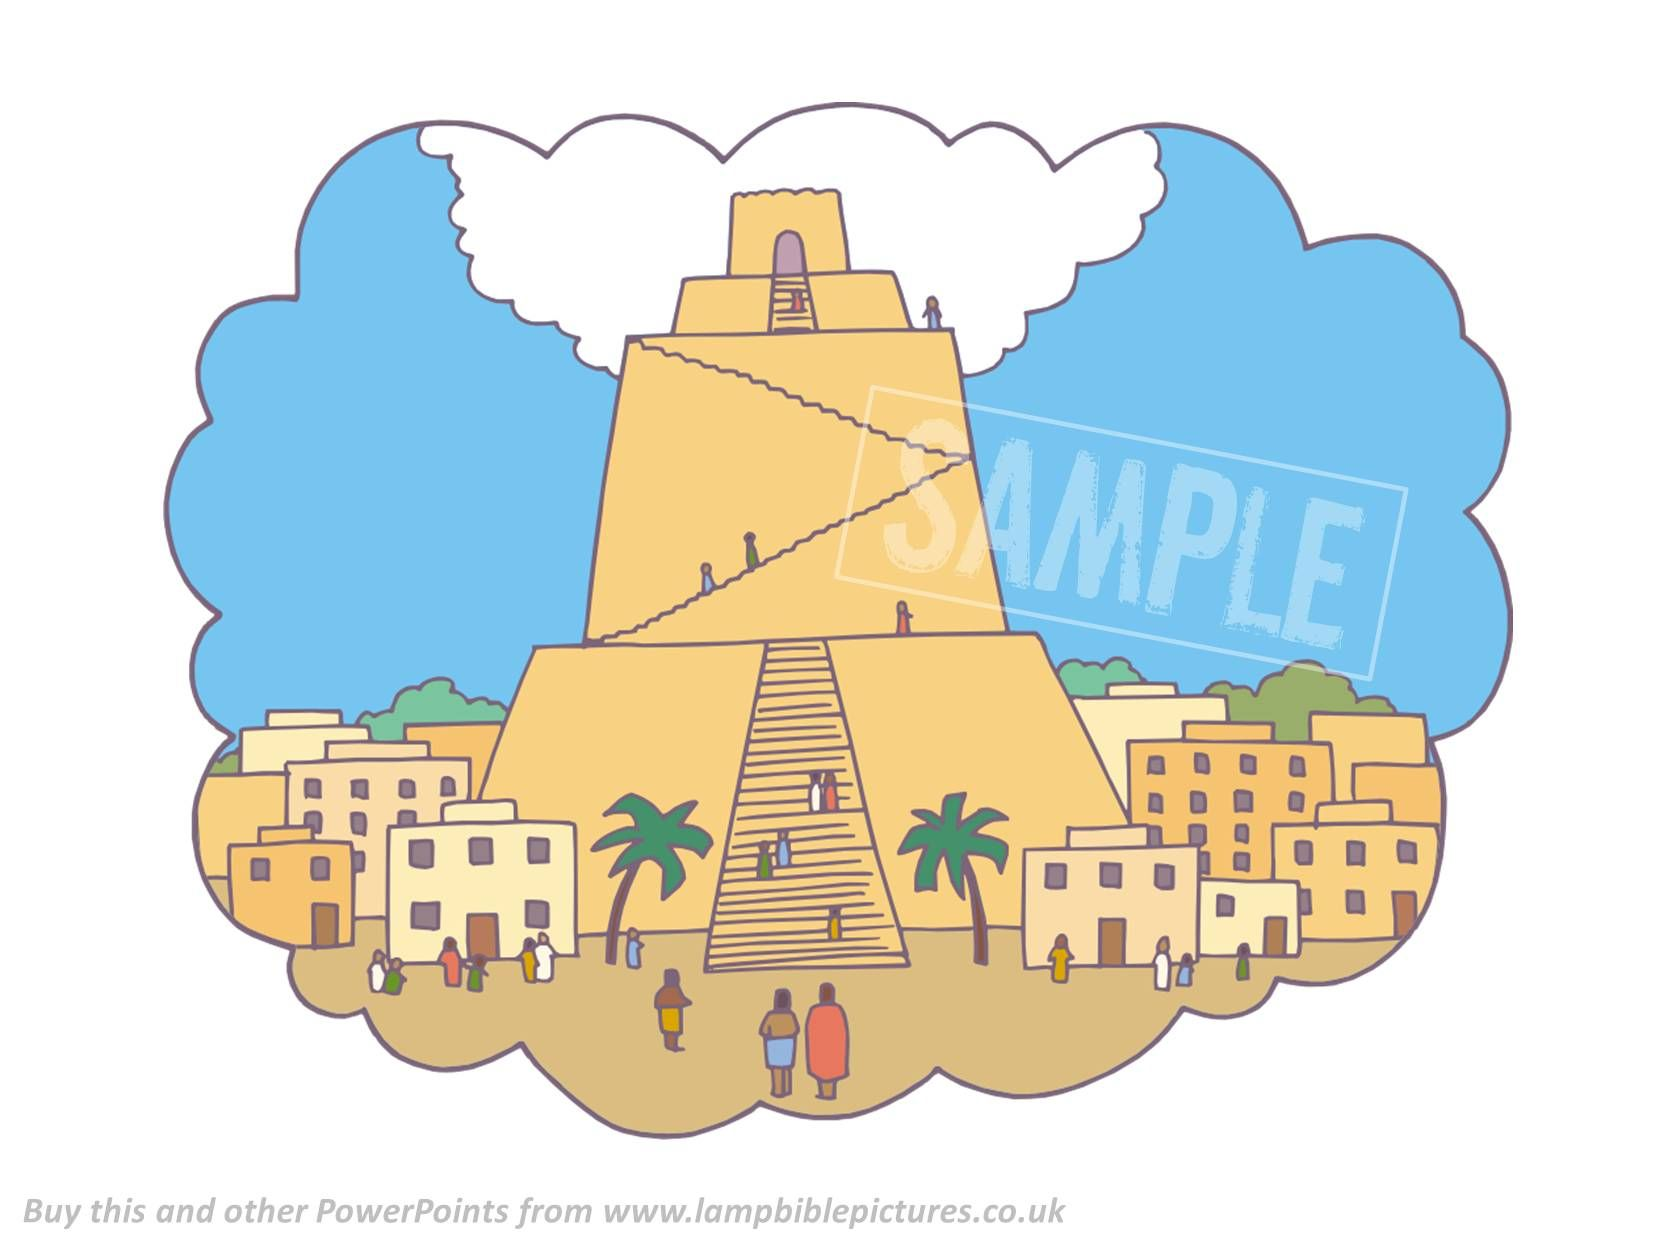 A Bible PowerPoint about the Tower of Babel (Genesis 11). Clear, simple, child-friendly and historically accurate.